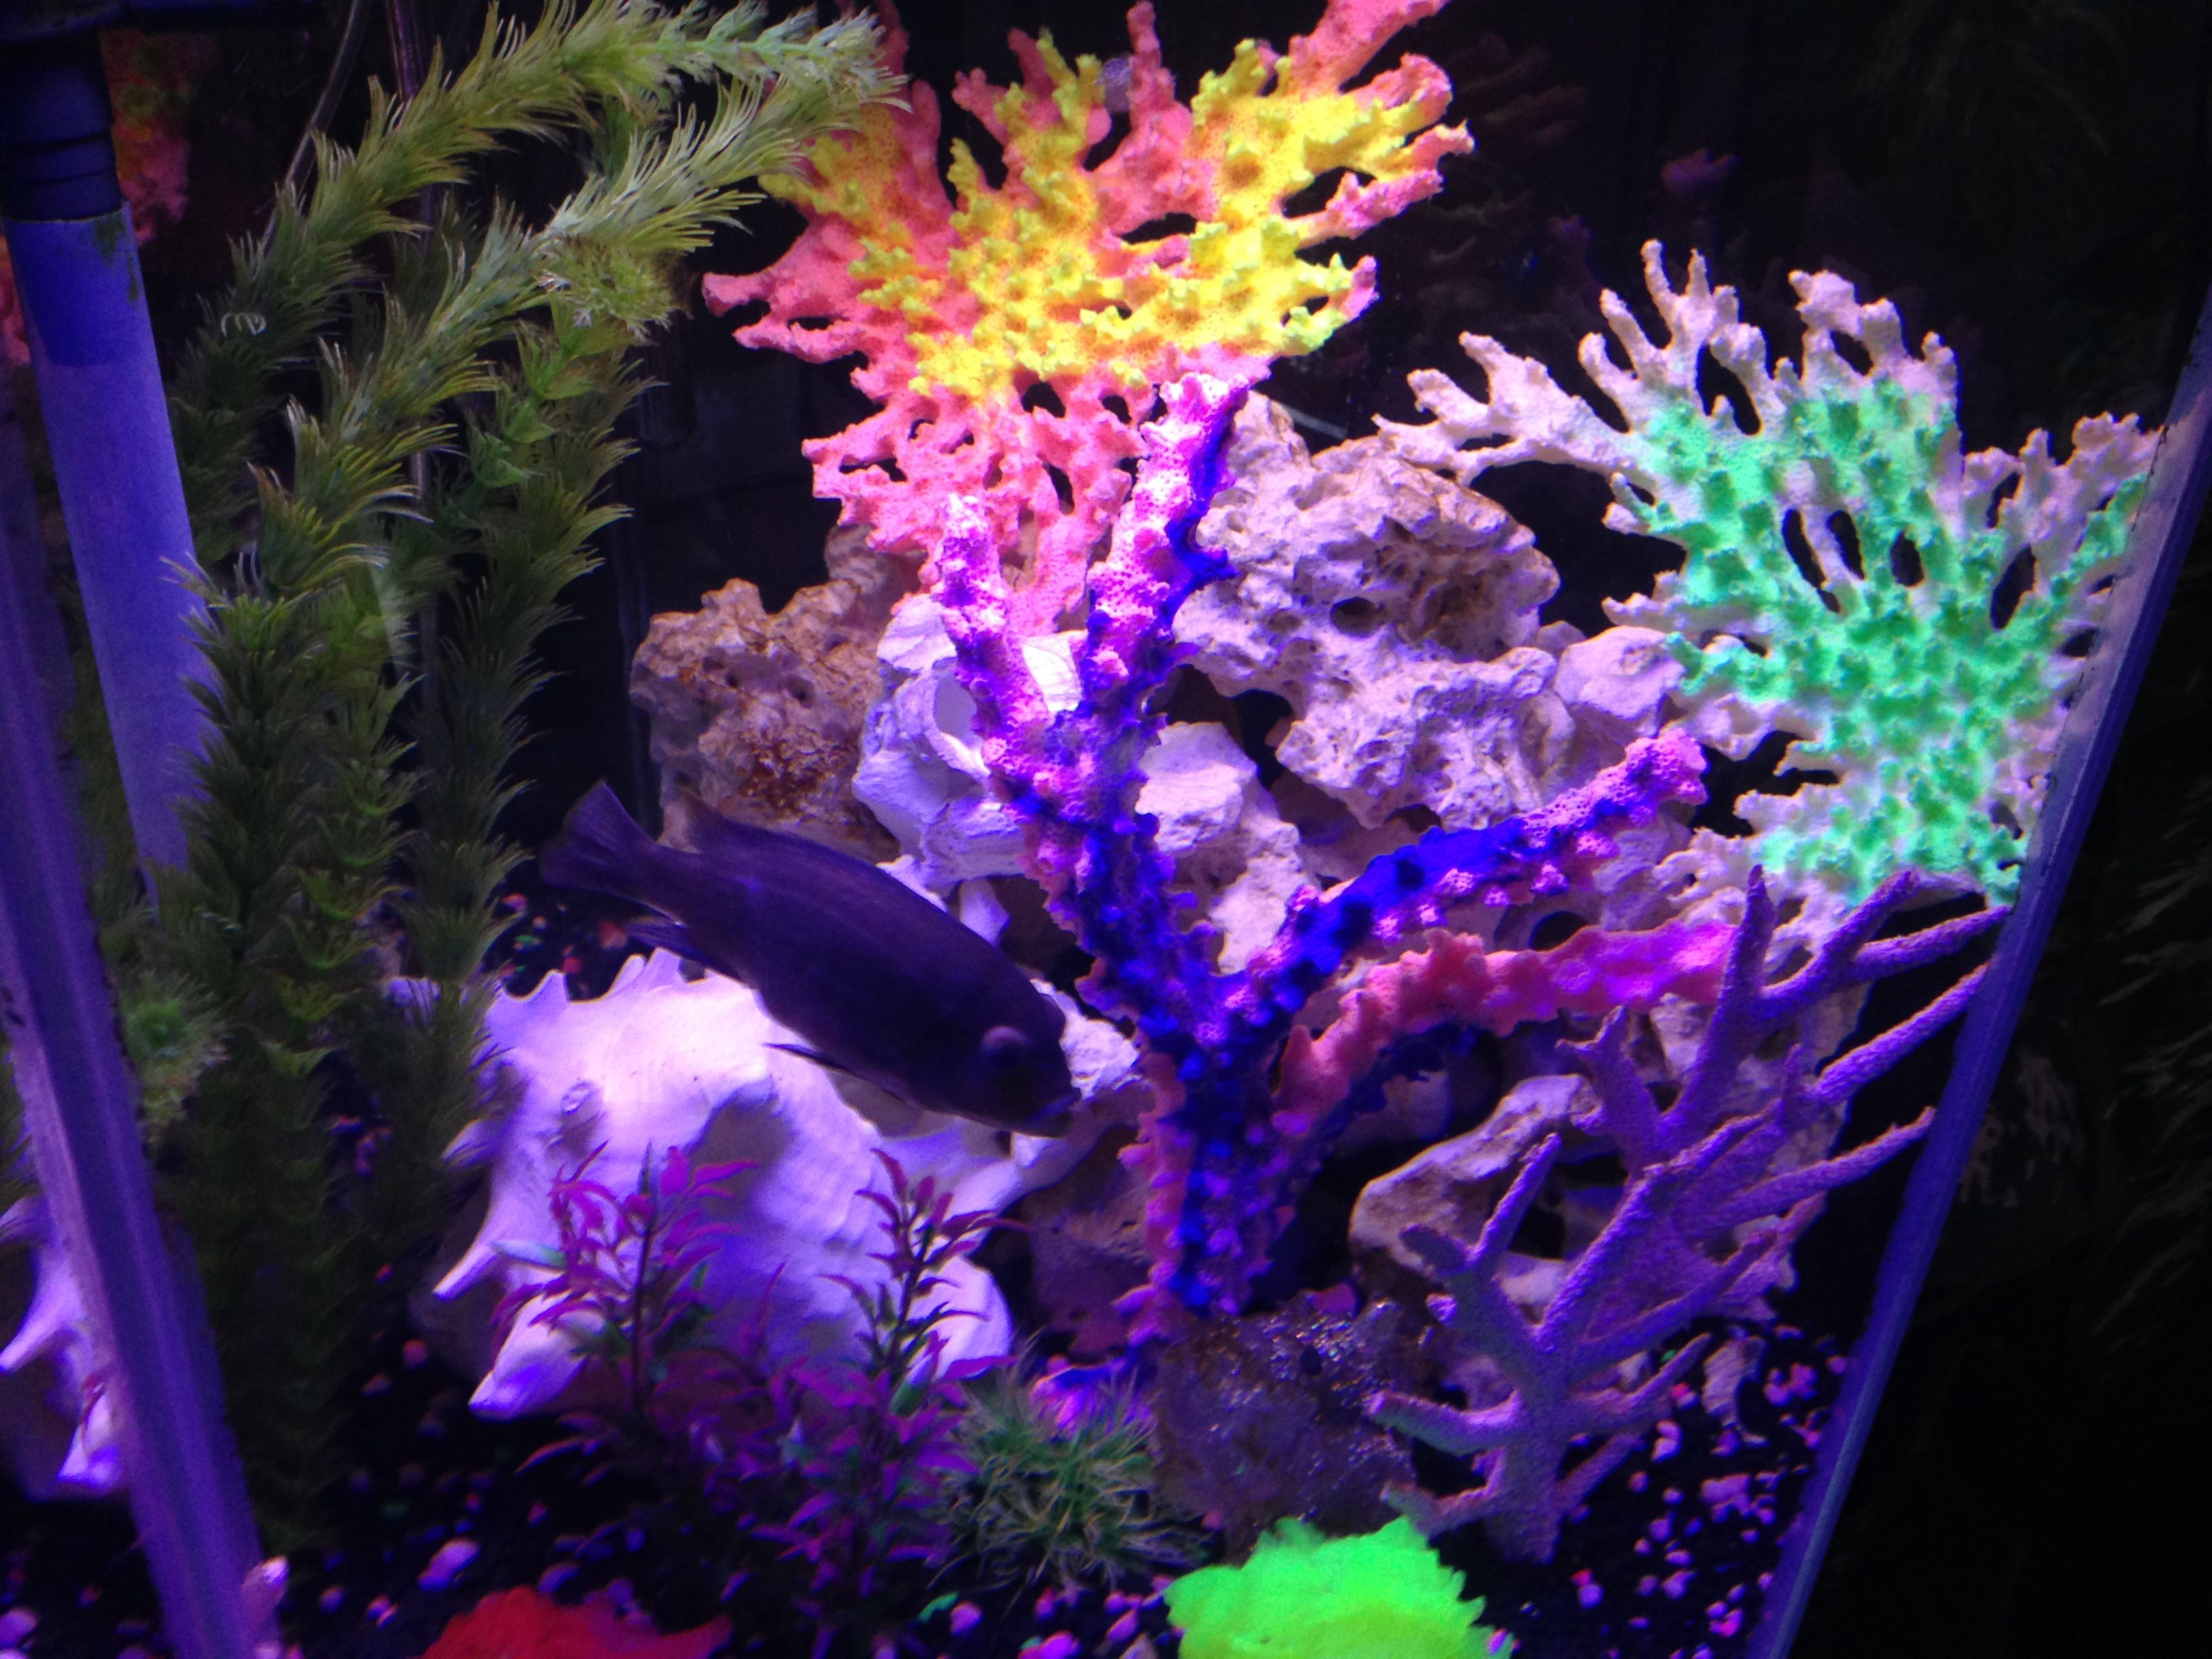 fish let looks once aquarium in got plant will days your louis and put decor tank tidy for the vivid fresh buy orange better it then about artifical coral dry water decoration ornaments out be take